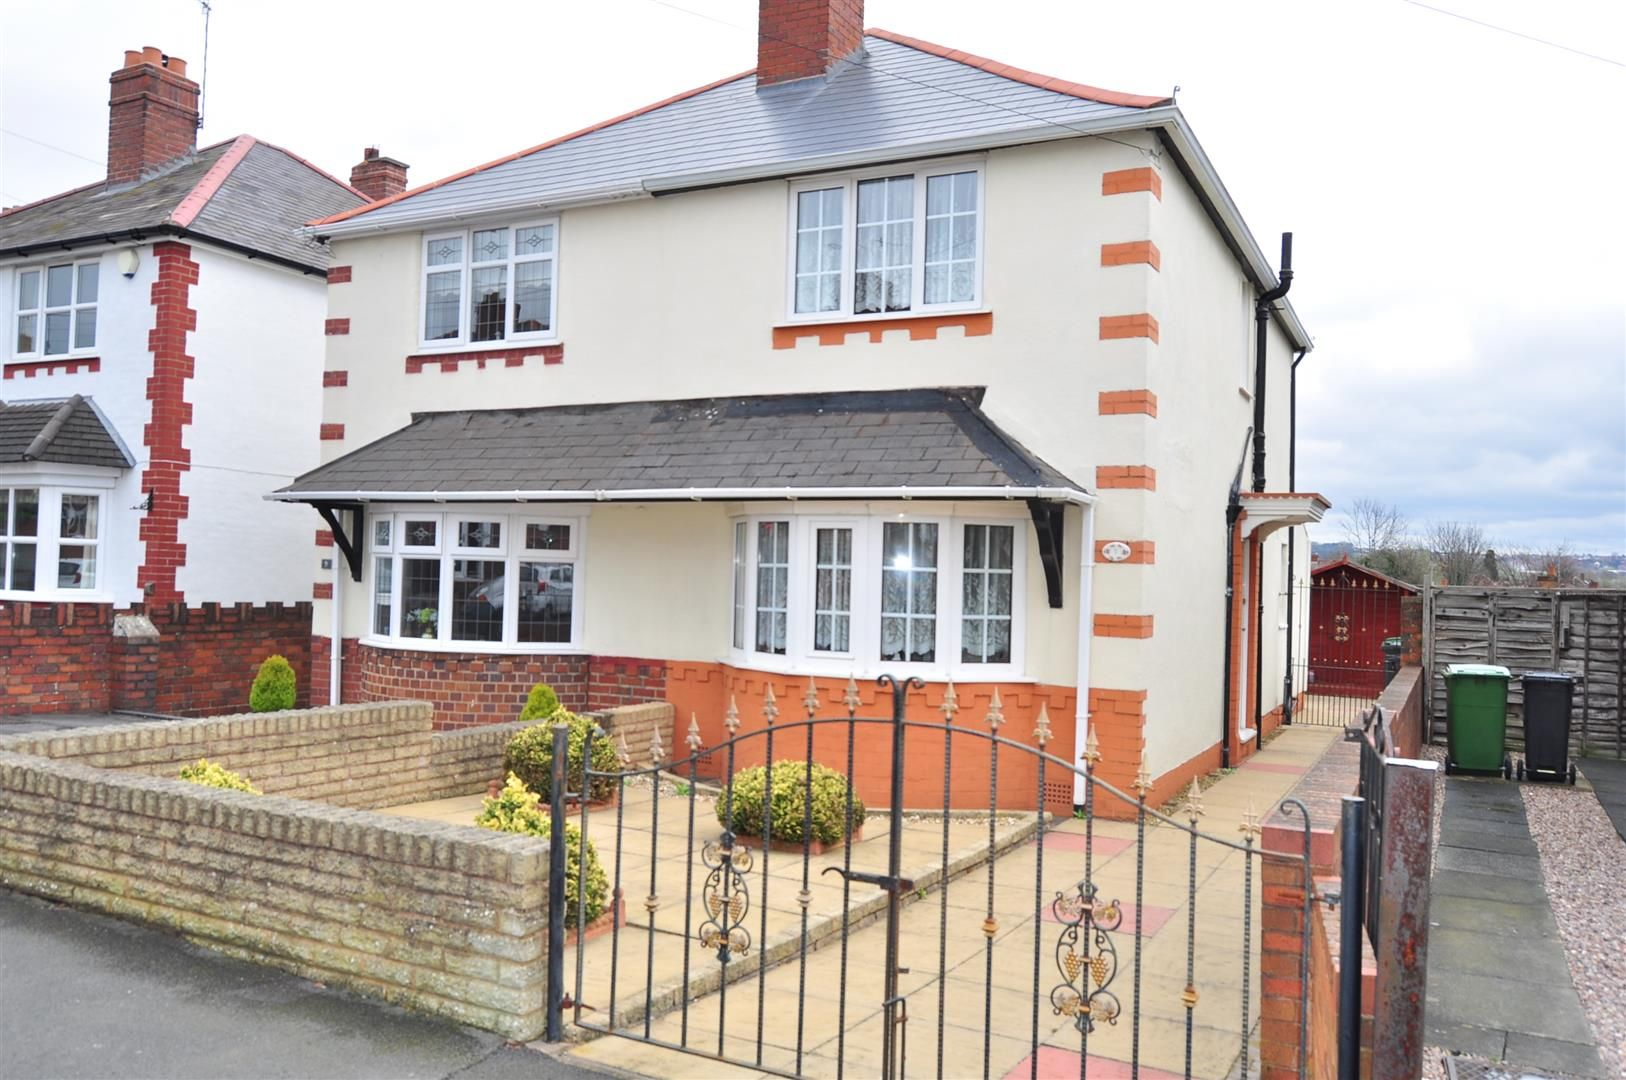 2 bed semi-detached for sale, DY2